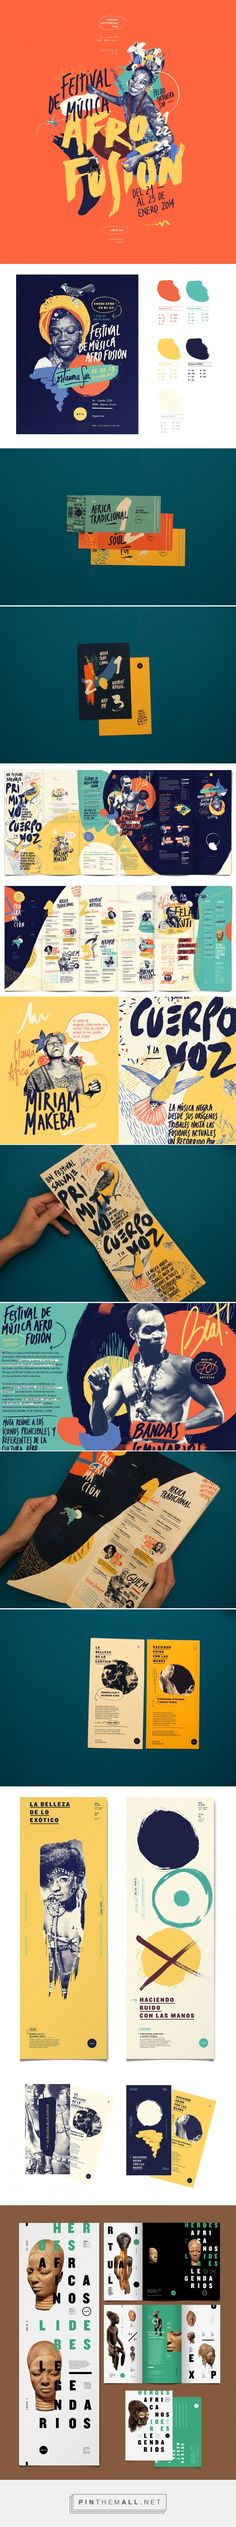 AFRO FUSION FESTIVAL on Behance - created via https://pinthemall.net